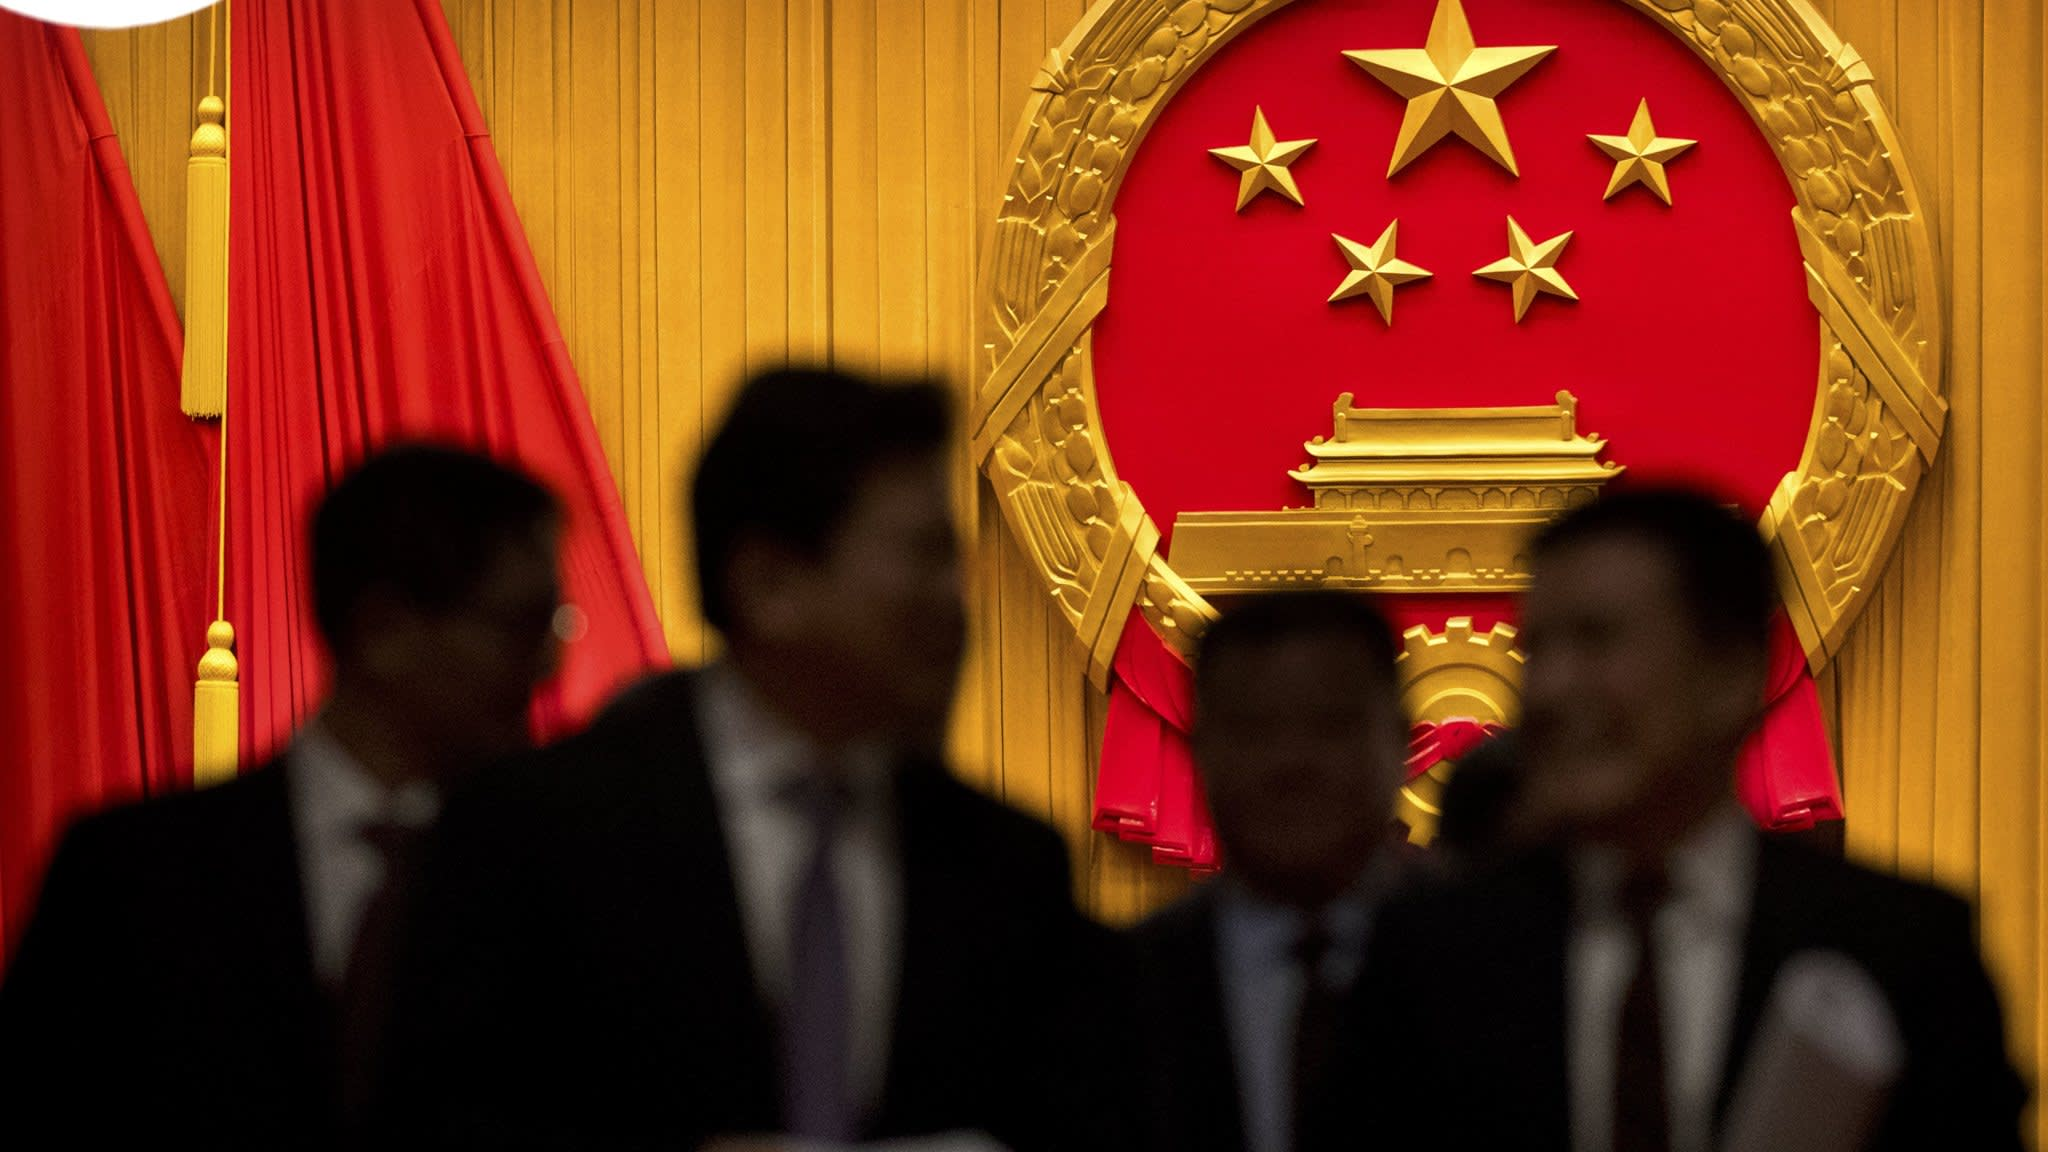 China's diplomacy budget doubles under Xi Jinping